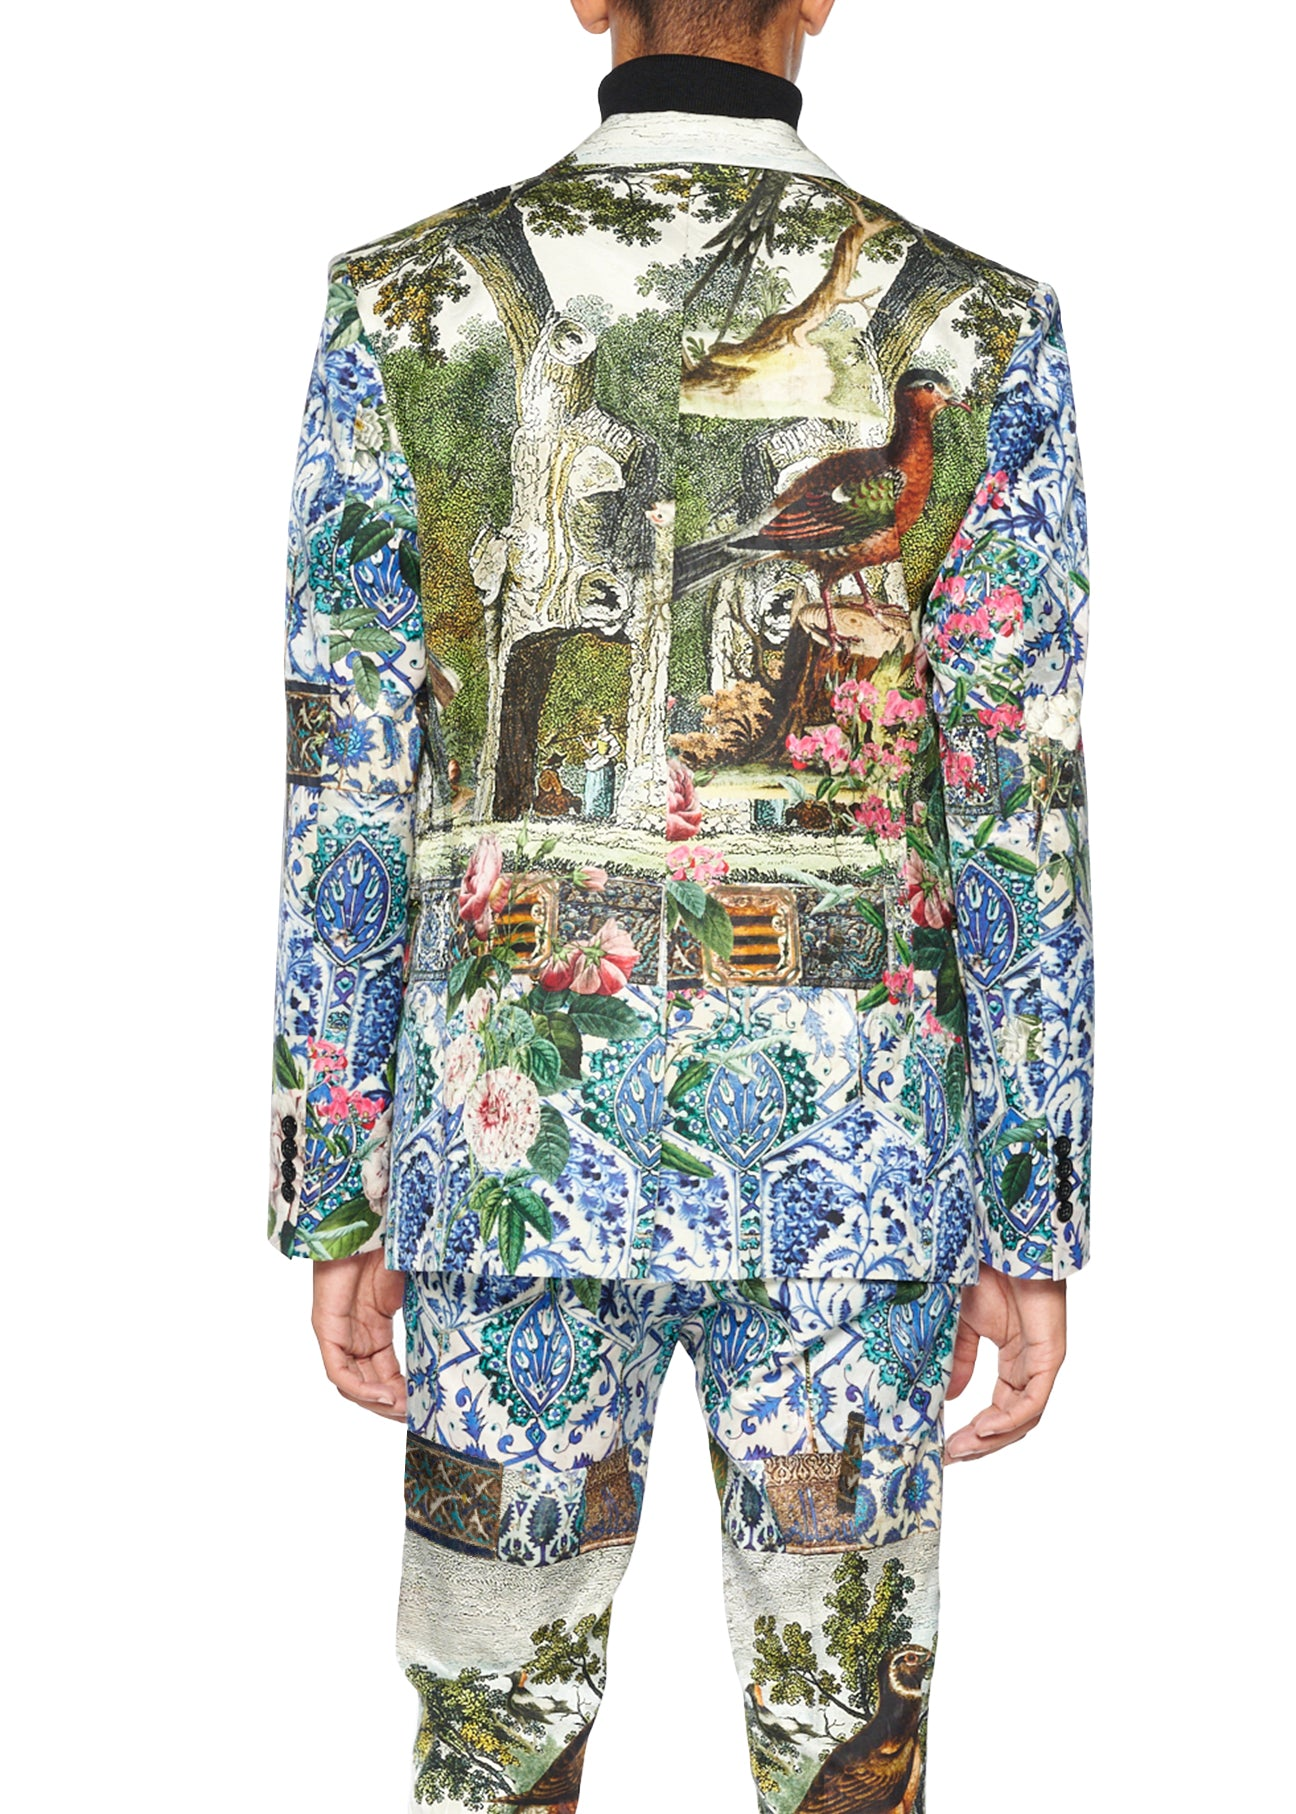 'Ottoman Empire Birds' Suit Jacket - Men's Jackets & Coats - Libertine